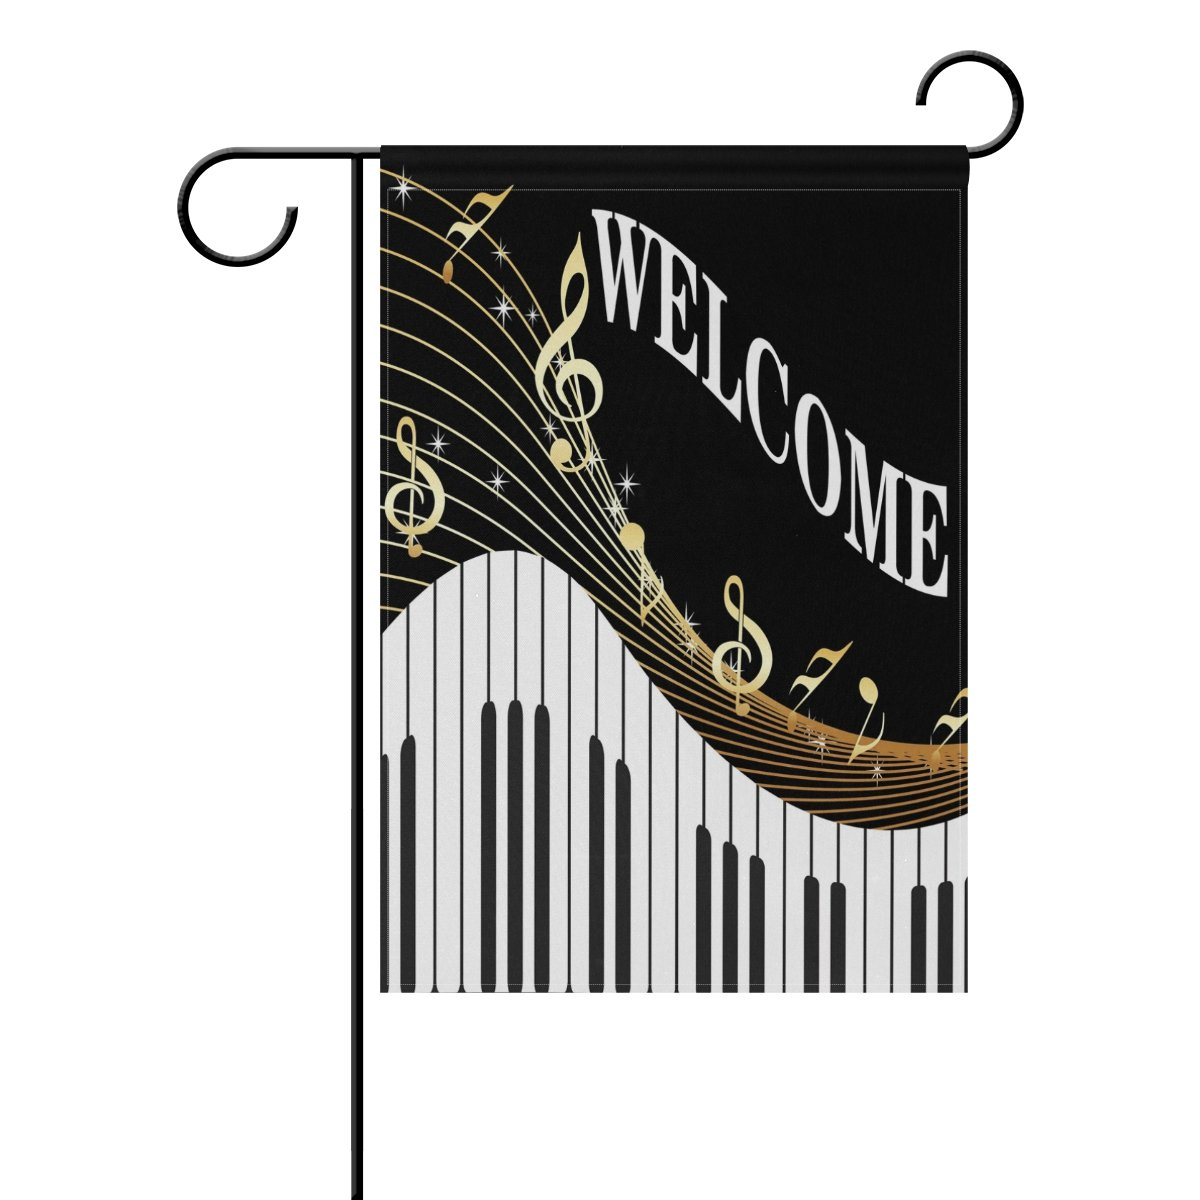 WXLIFE Welcome Music Piano Musical Notes Garden Flag 12 X 18 Inches, Double Sided Outdoor Yard Yall Garden Flag for Wedding Party House Home Decor